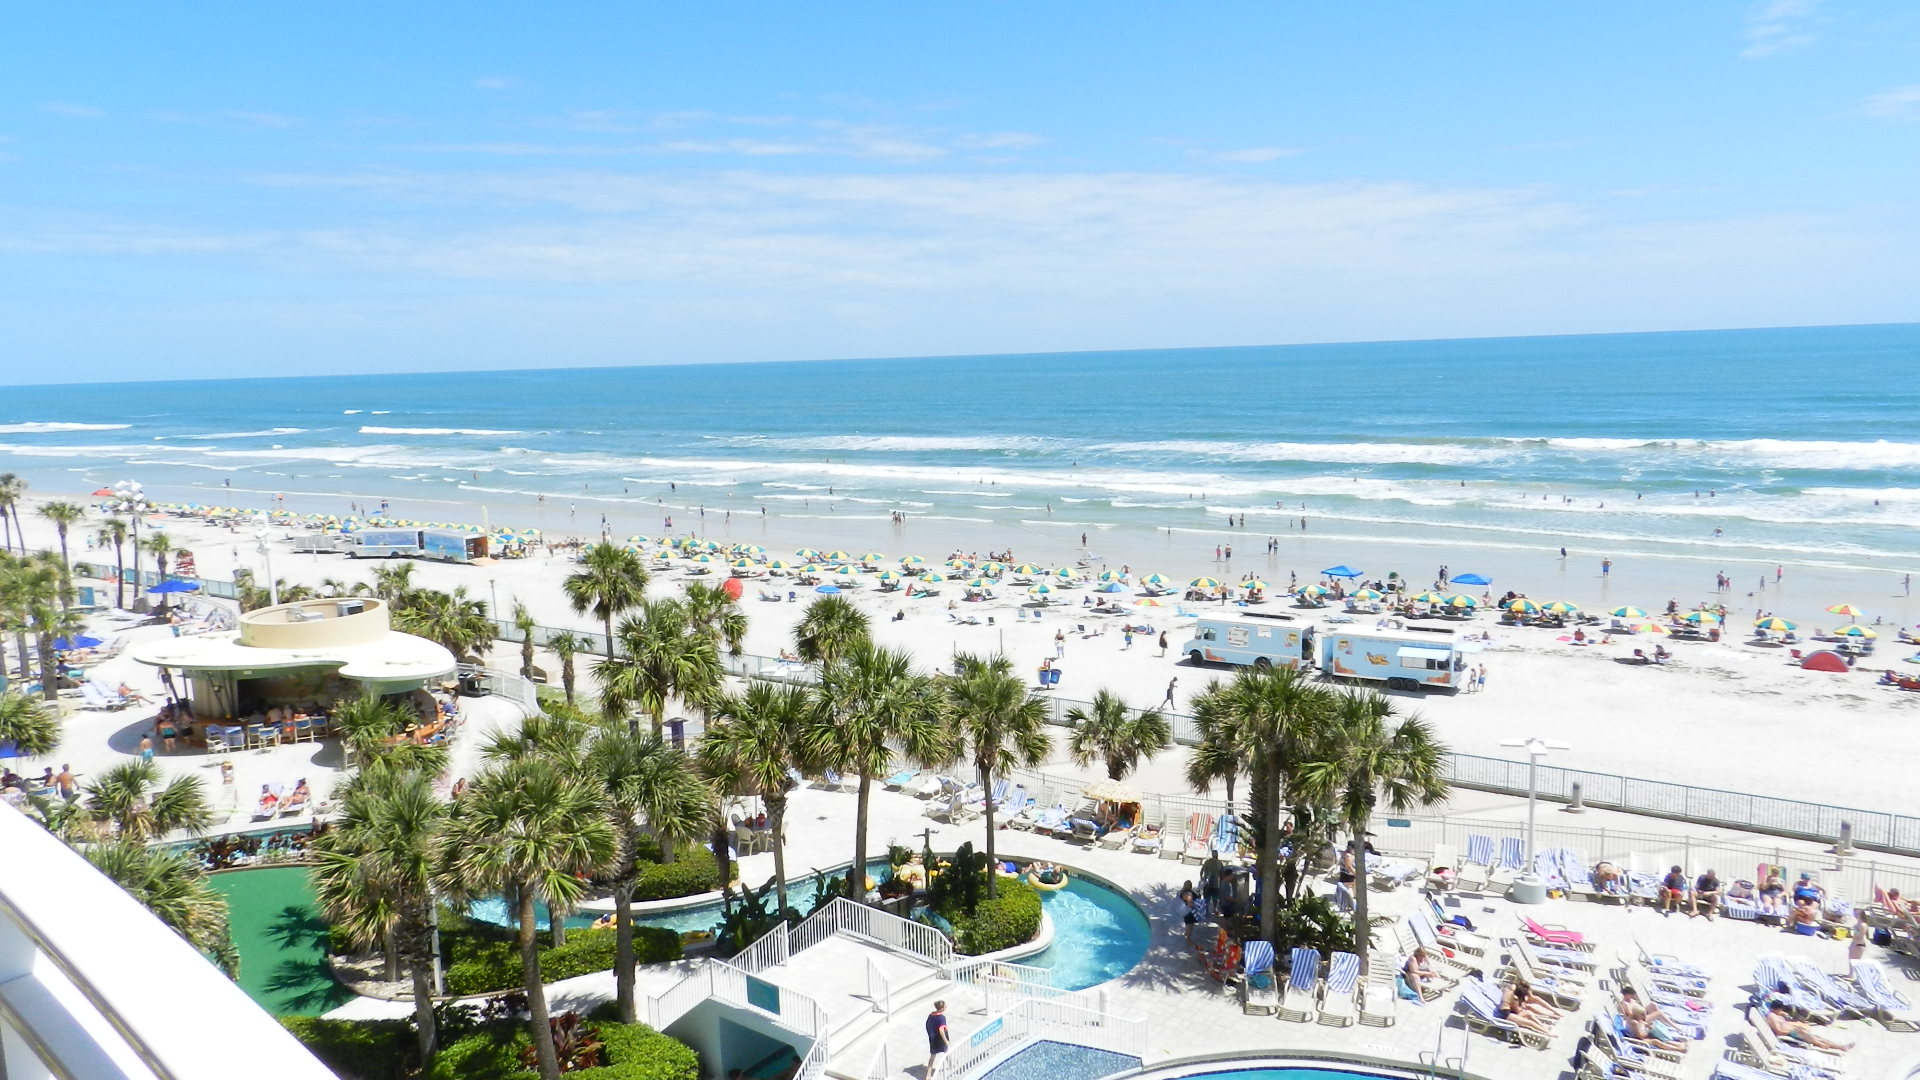 beach daytona wyse fl the cottage shores for white rent cottages condo surf team condos